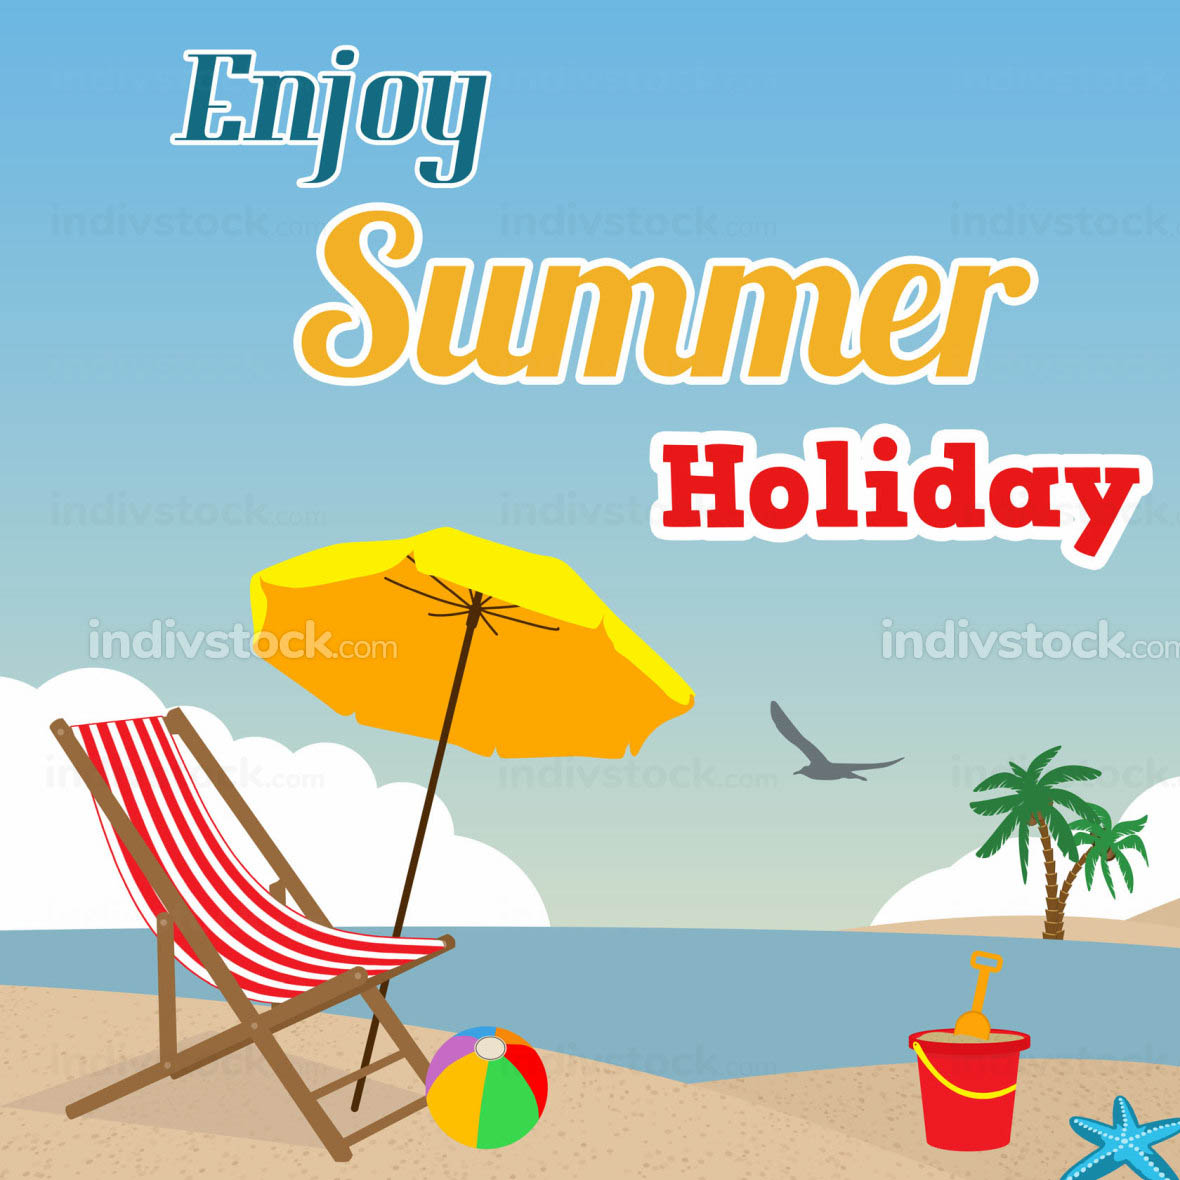 Enjoy Summer Holiday poster